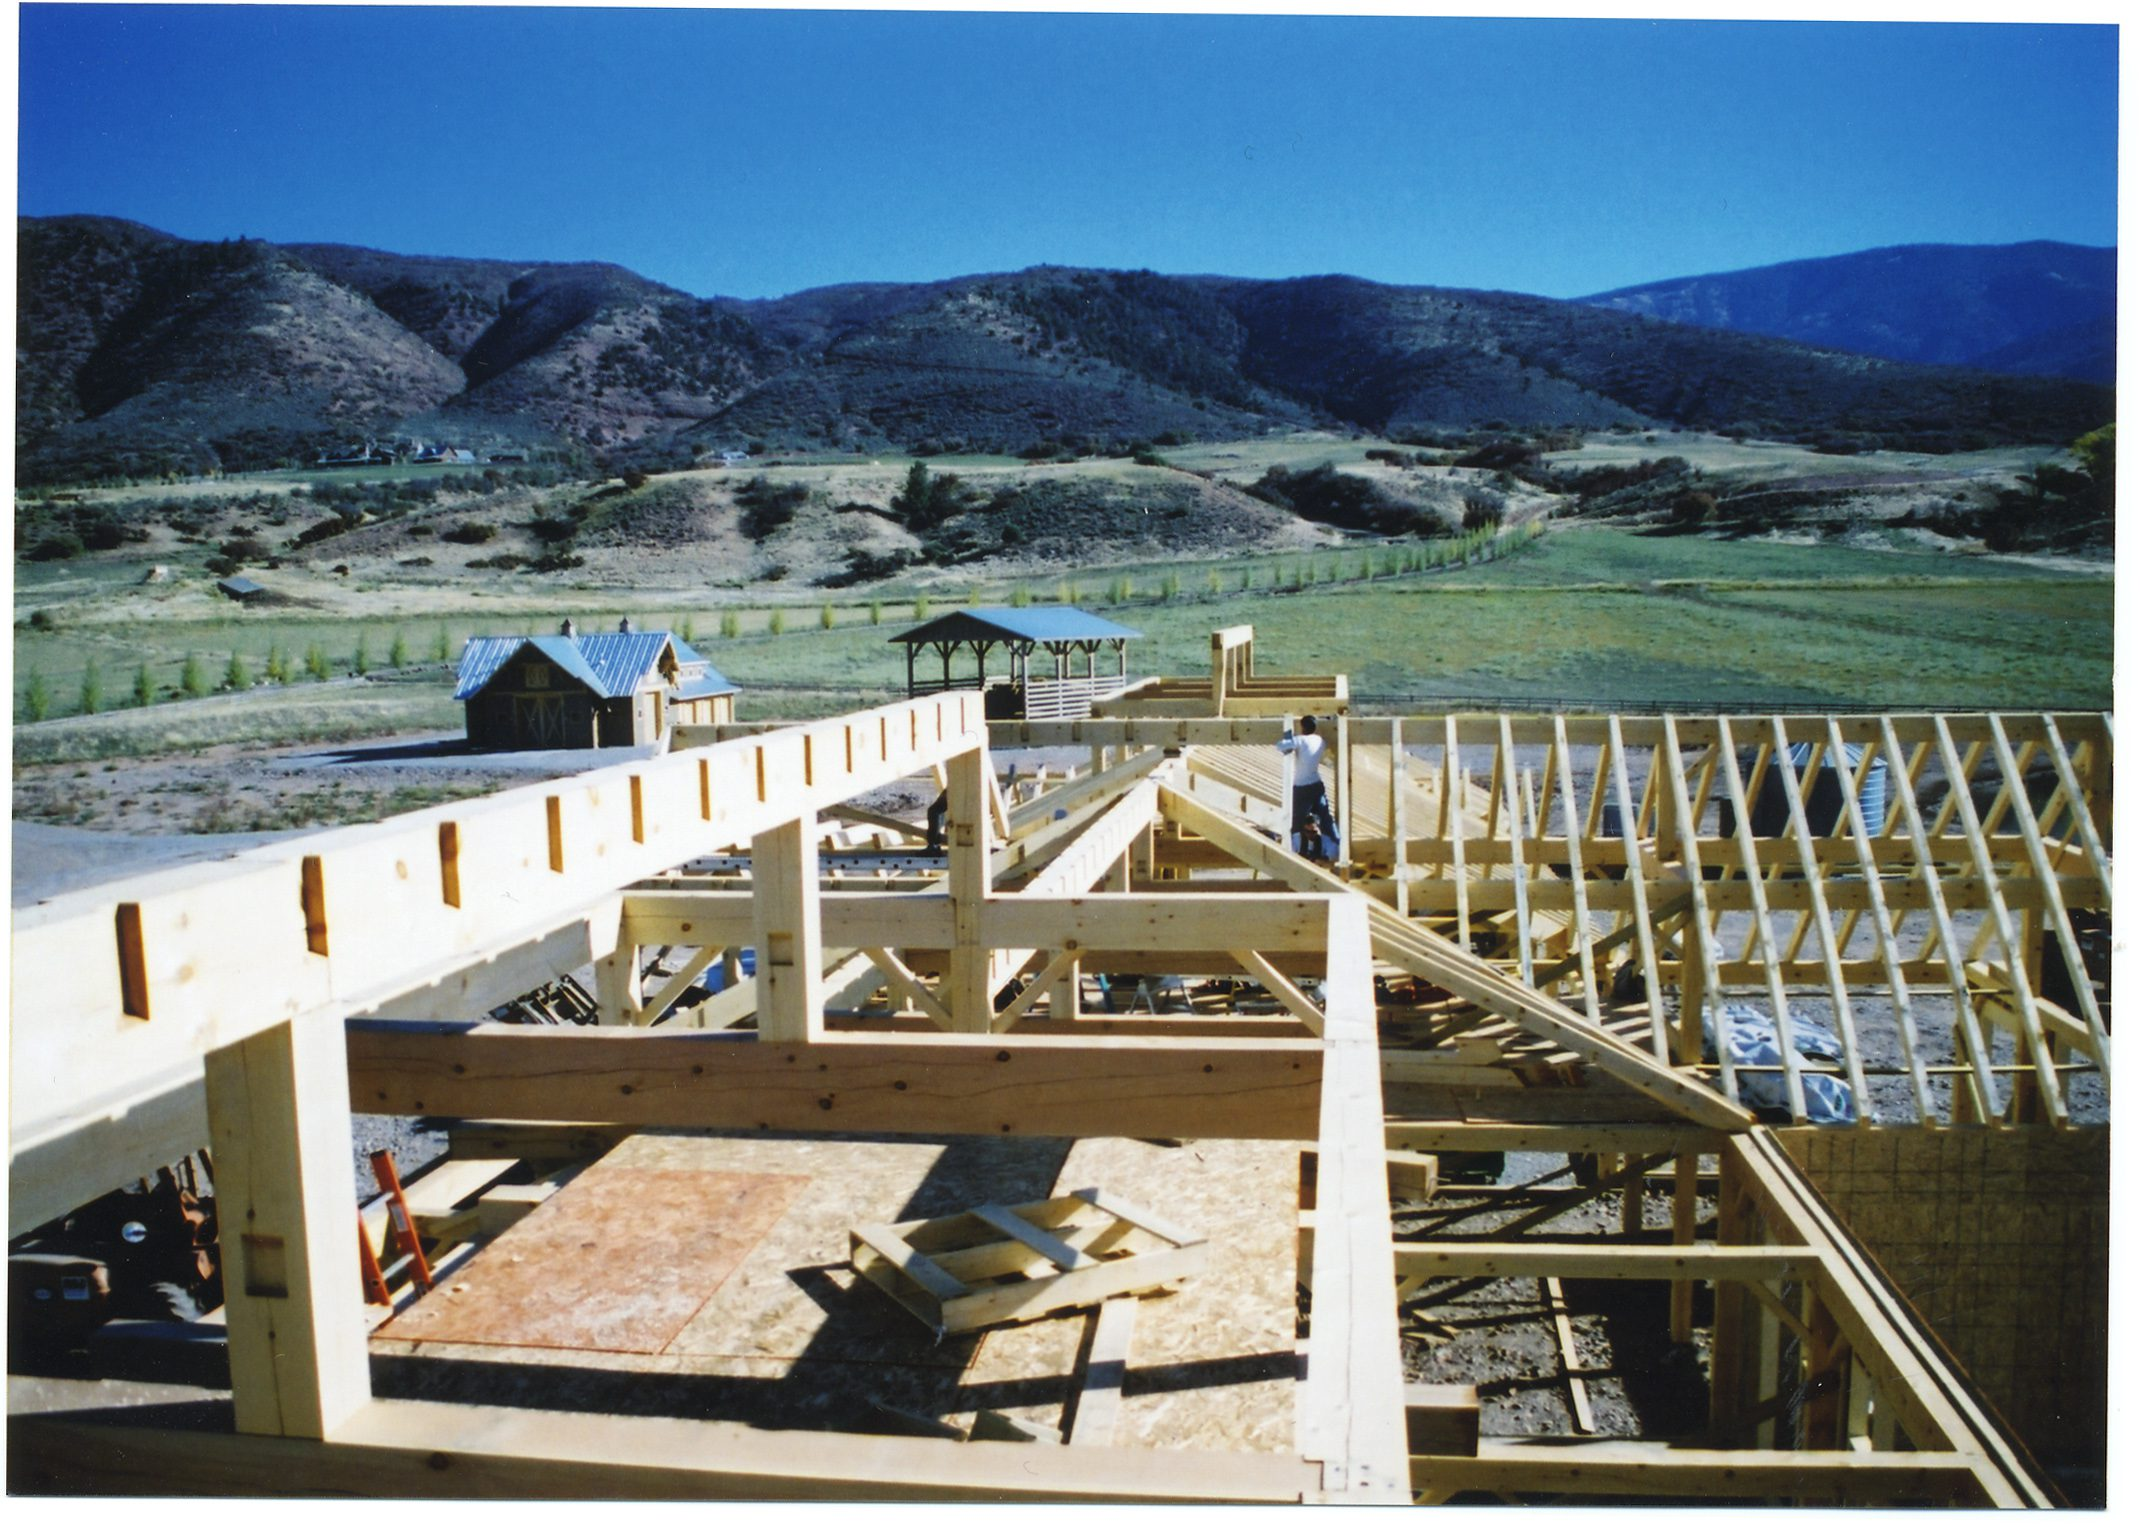 Normerica Timber Frames, Commercial Project, Chaparral Ranch, Construction, Timber Frame Roof, Aspen, USA, Exterior